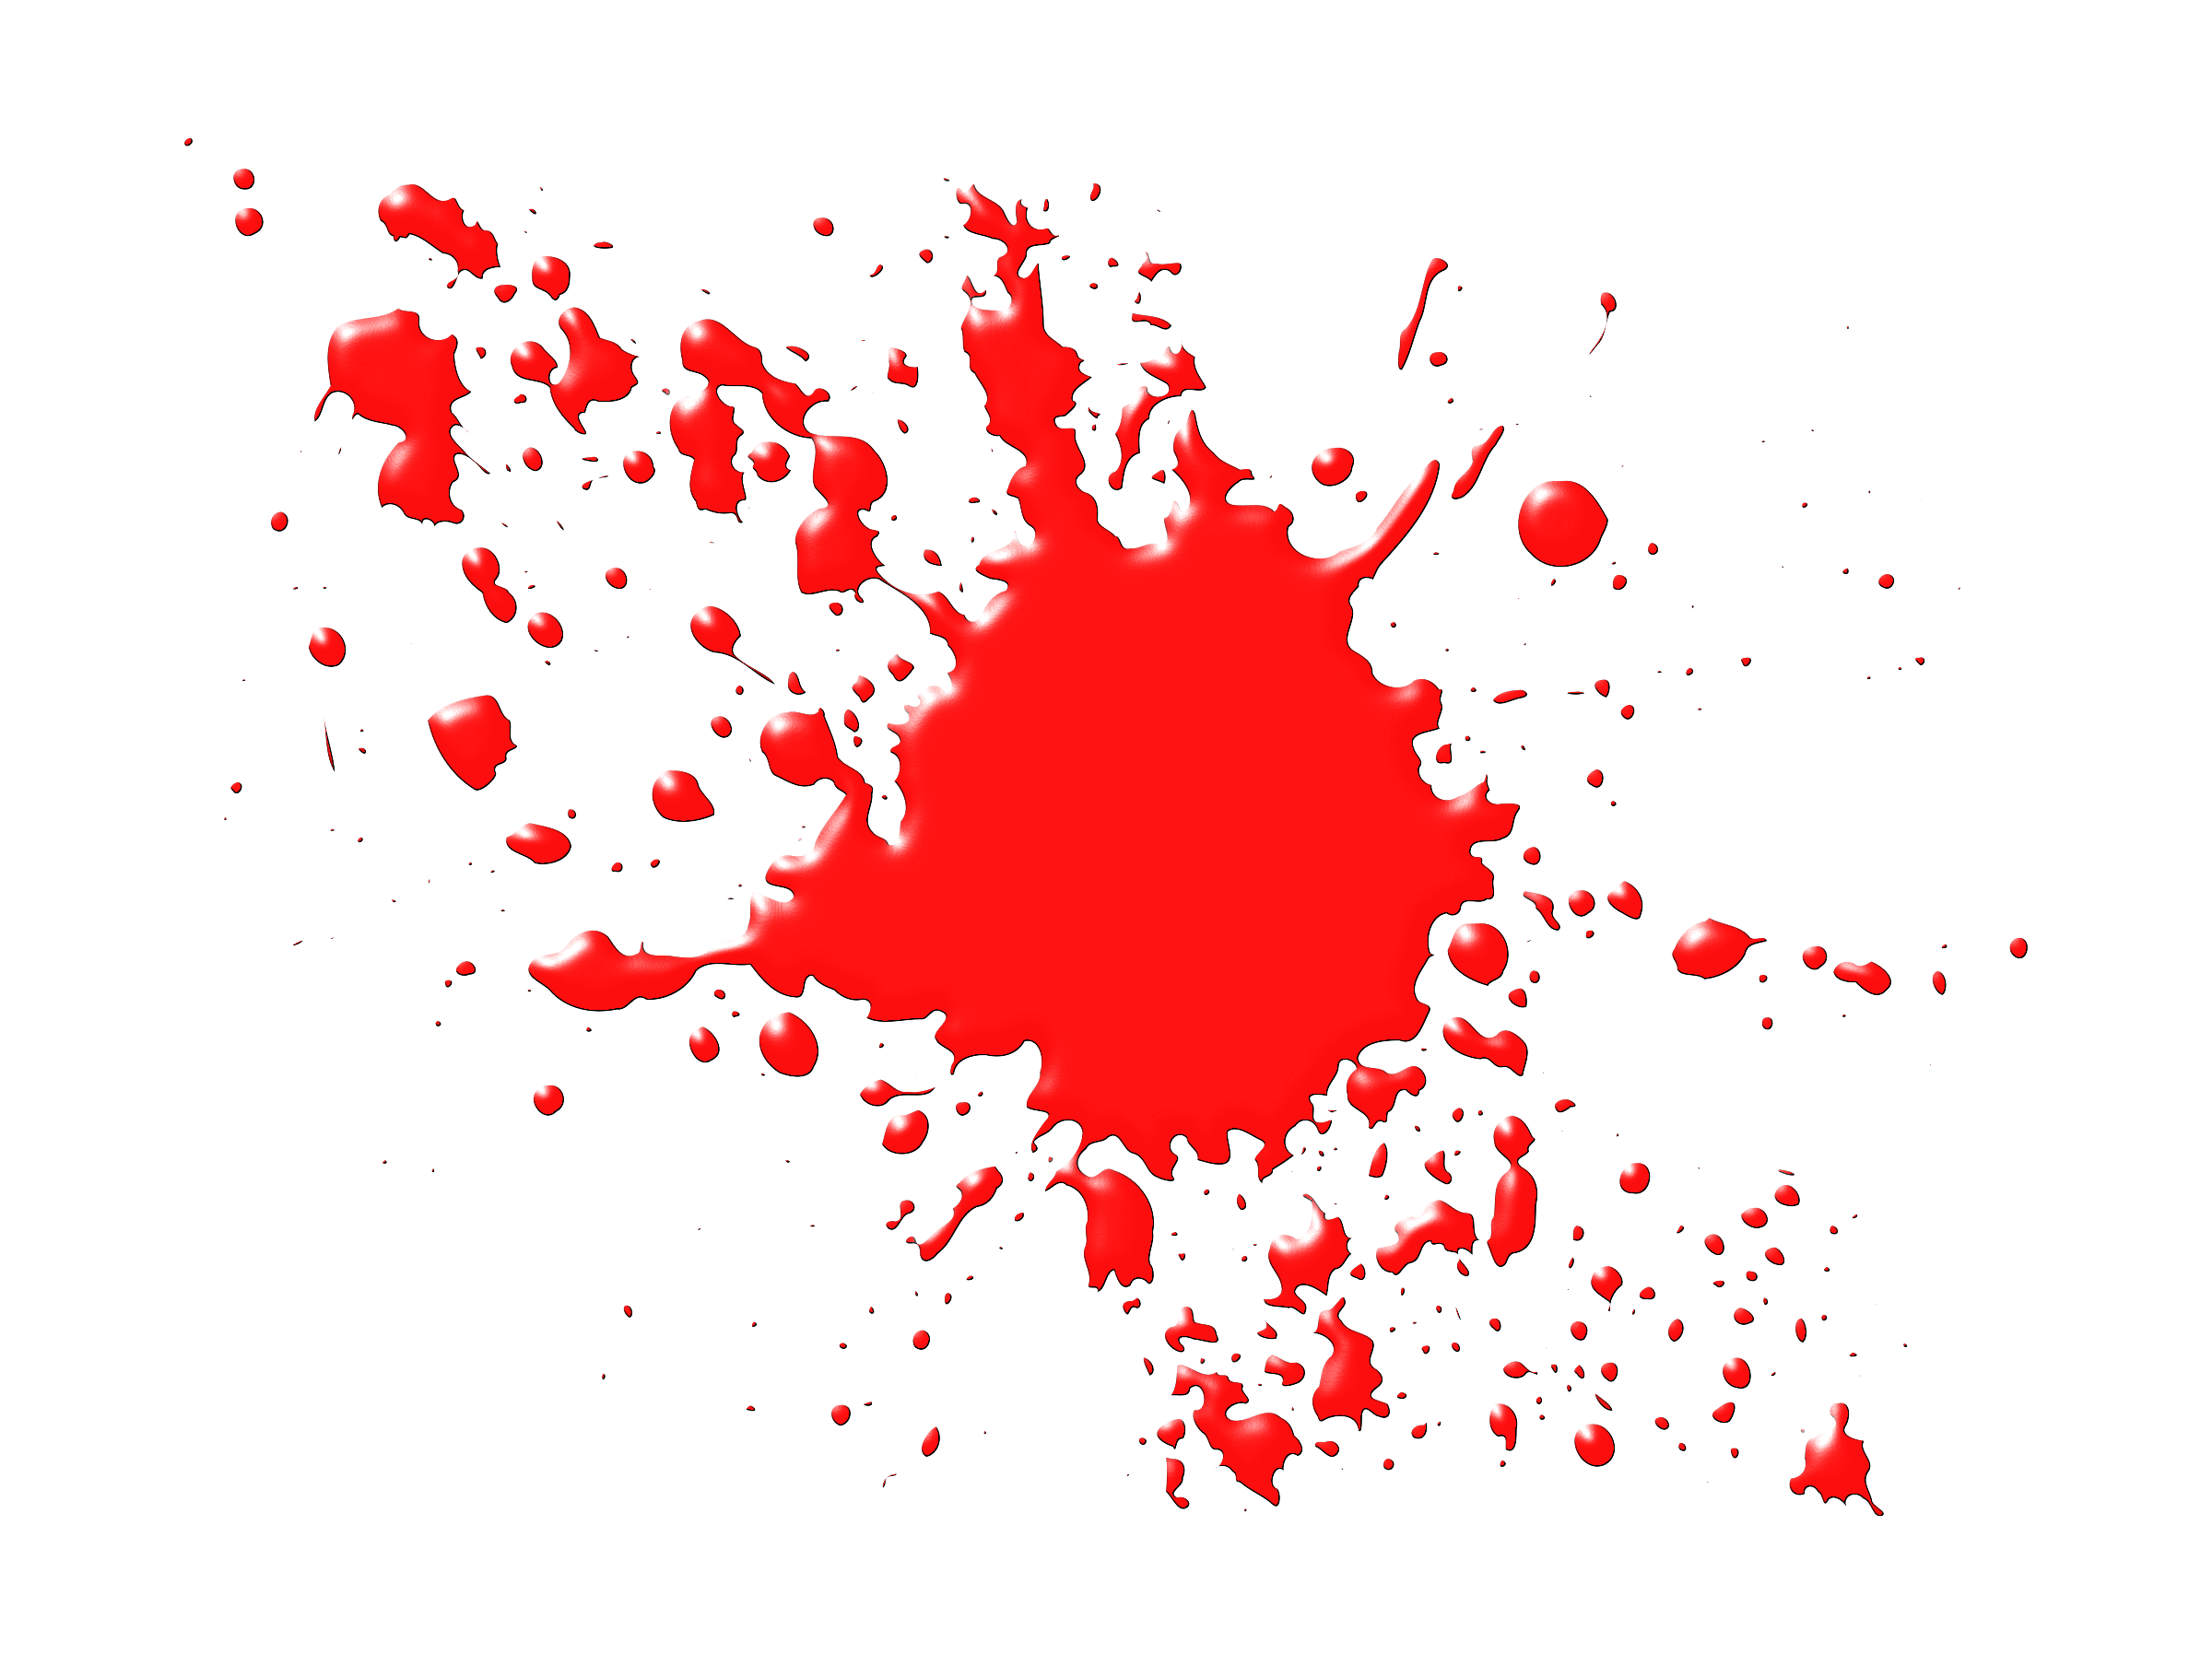 Blood Splatter Png Viewing Ga - Blood Splatter Clipart